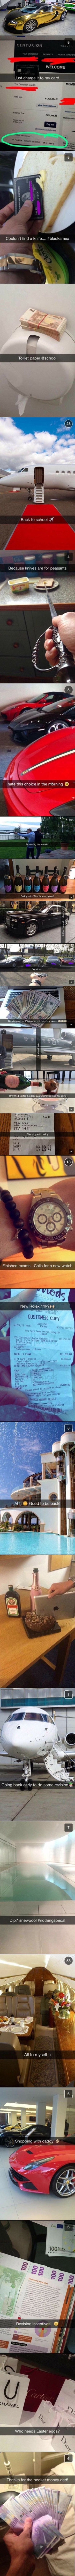 This is how the Rich Kids of Snapchat spend their days, and money,